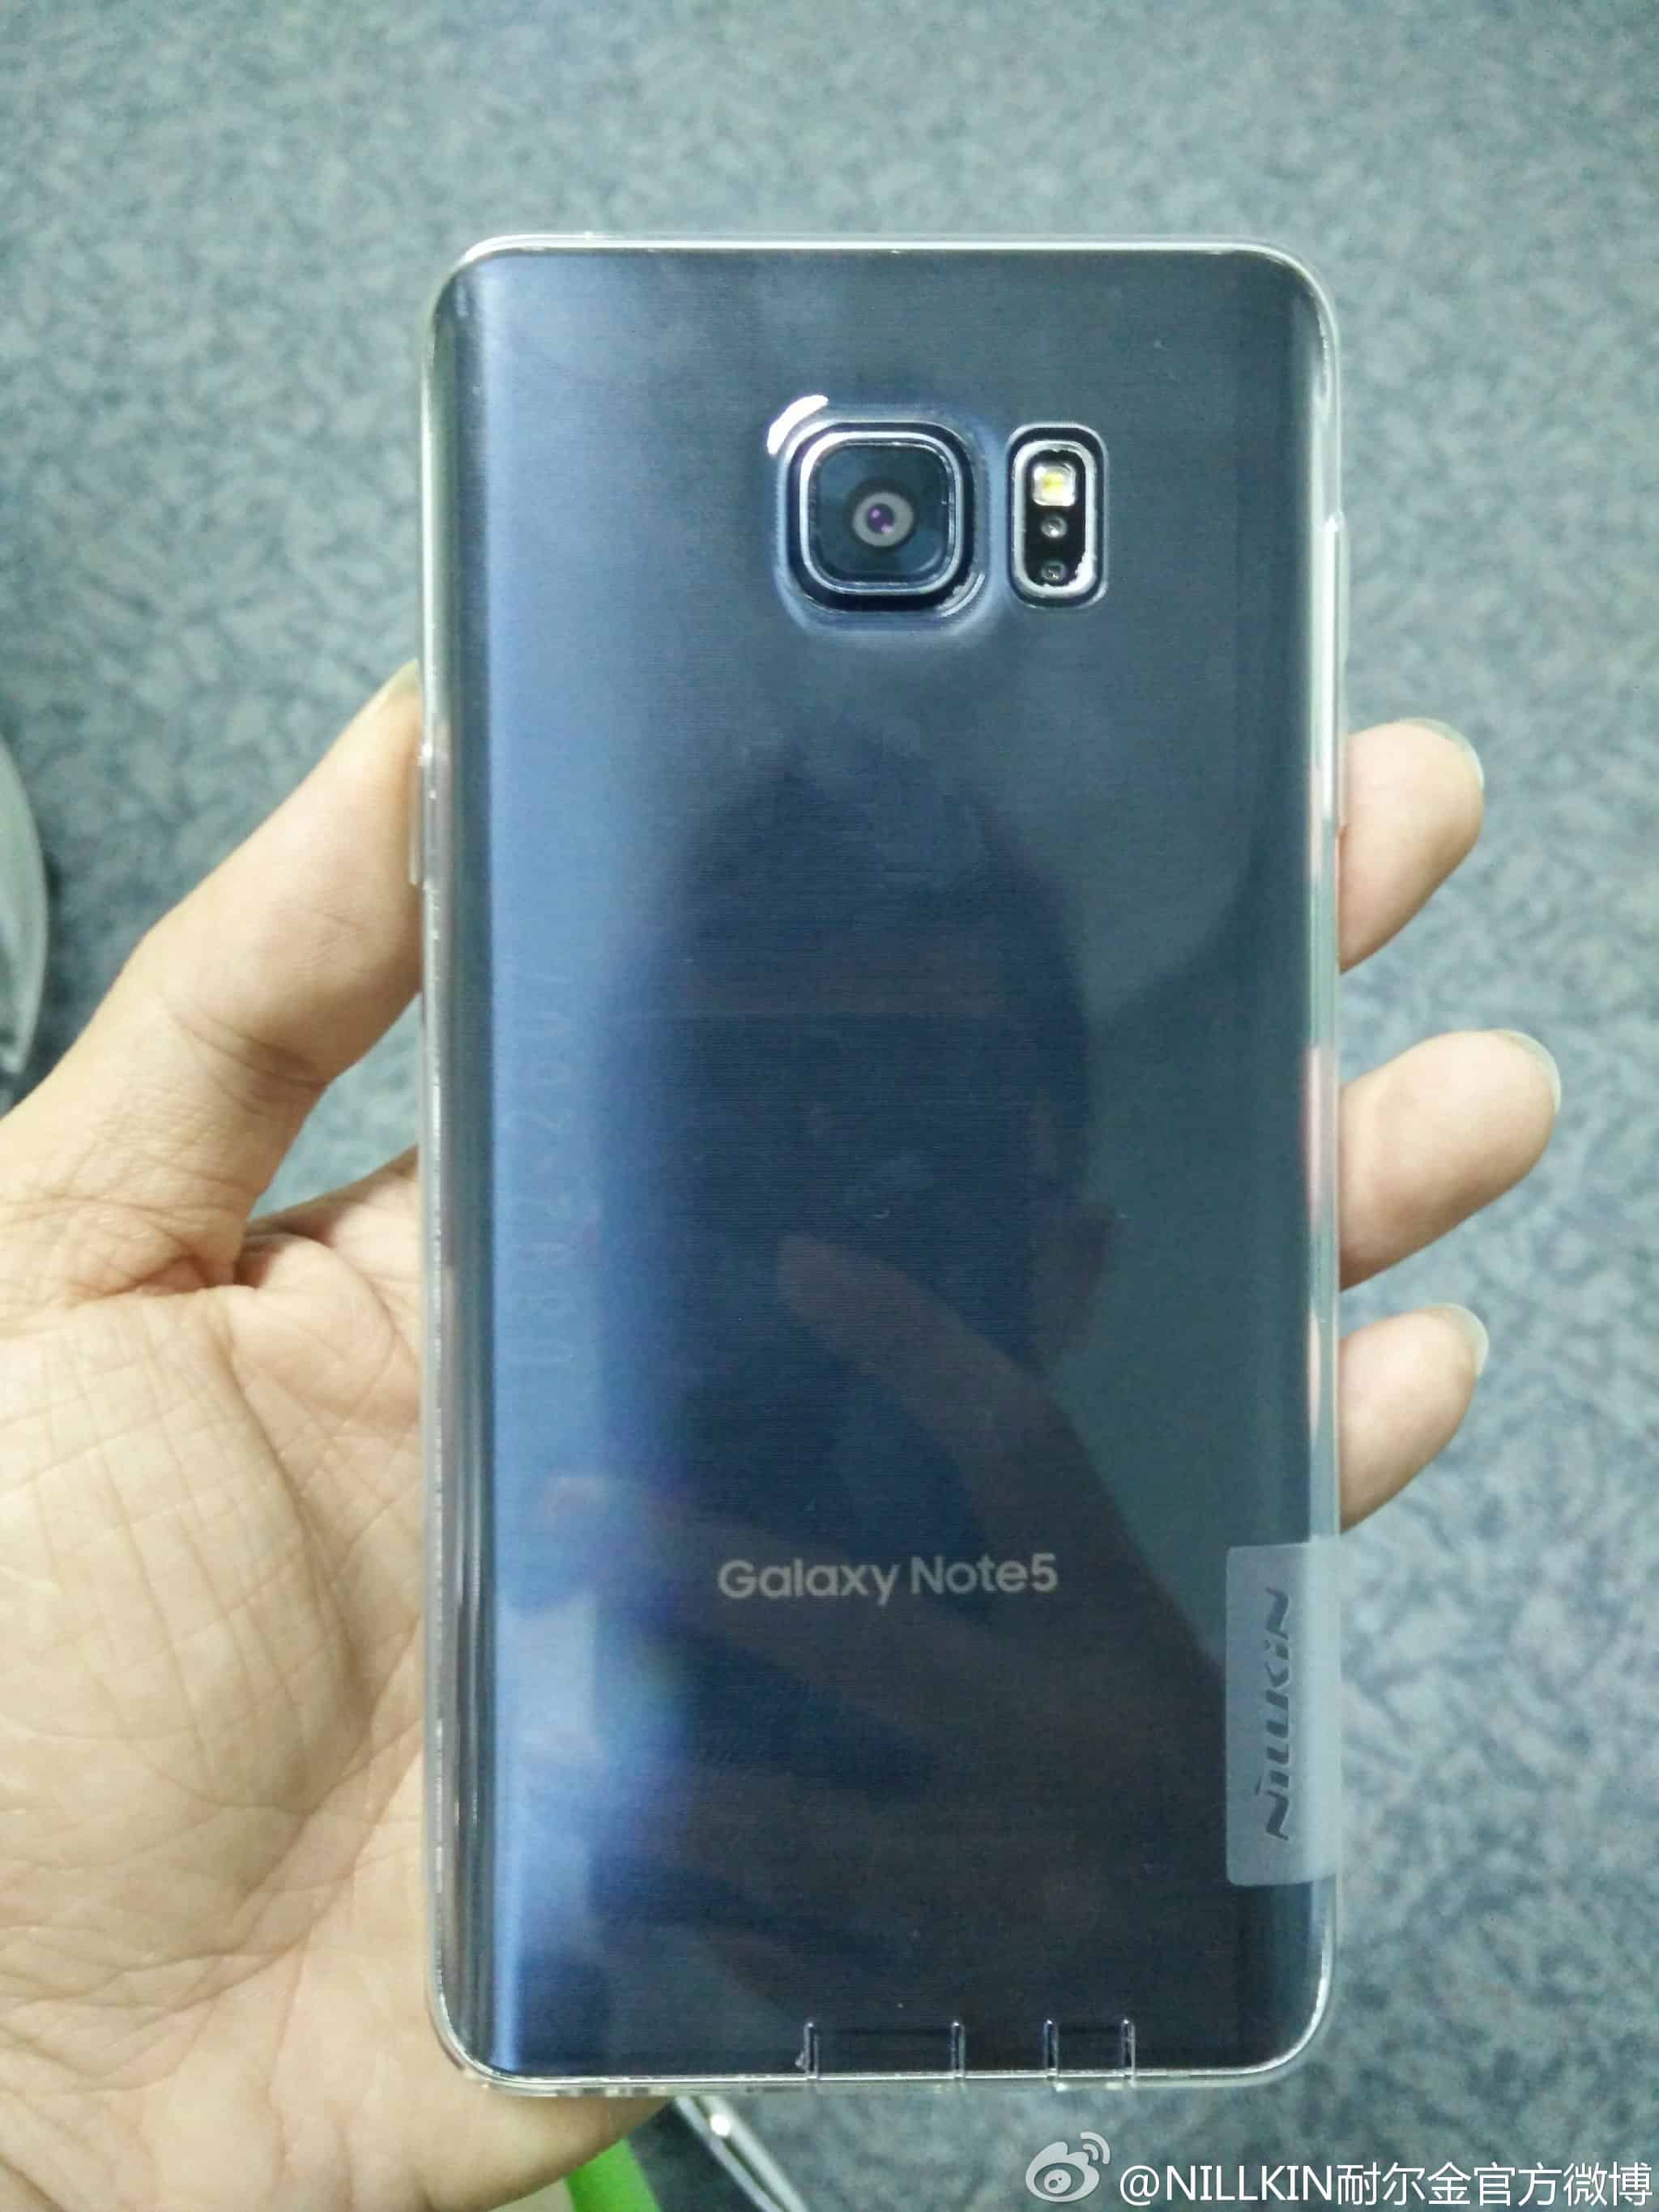 Galaxy Note 5 Nillkin leak 01